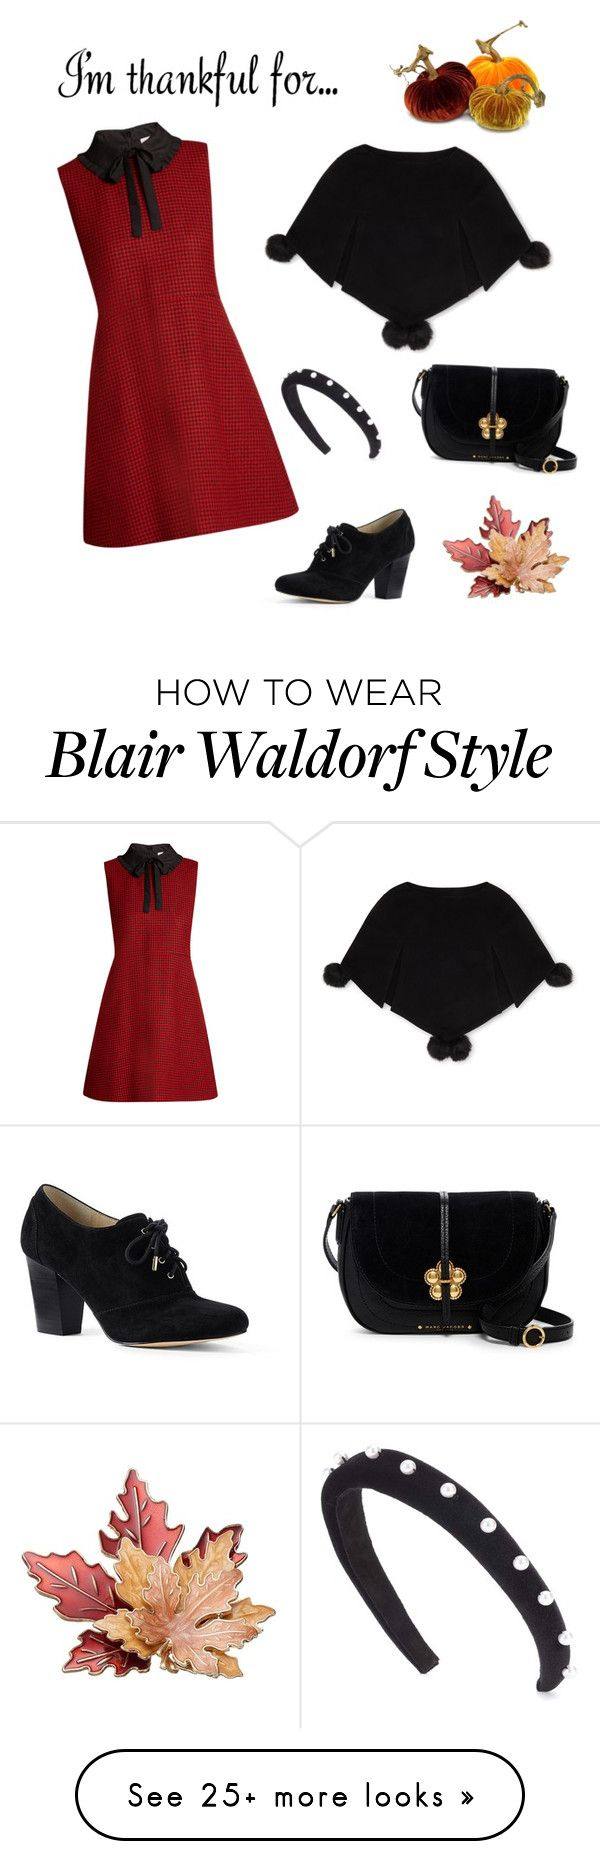 """""""Blair Waldorf thanksgiving"""" by britavares on Polyvore featuring Lands' End, RED Valentino, Marc Jacobs, Altuzarra and Henri Bendel"""